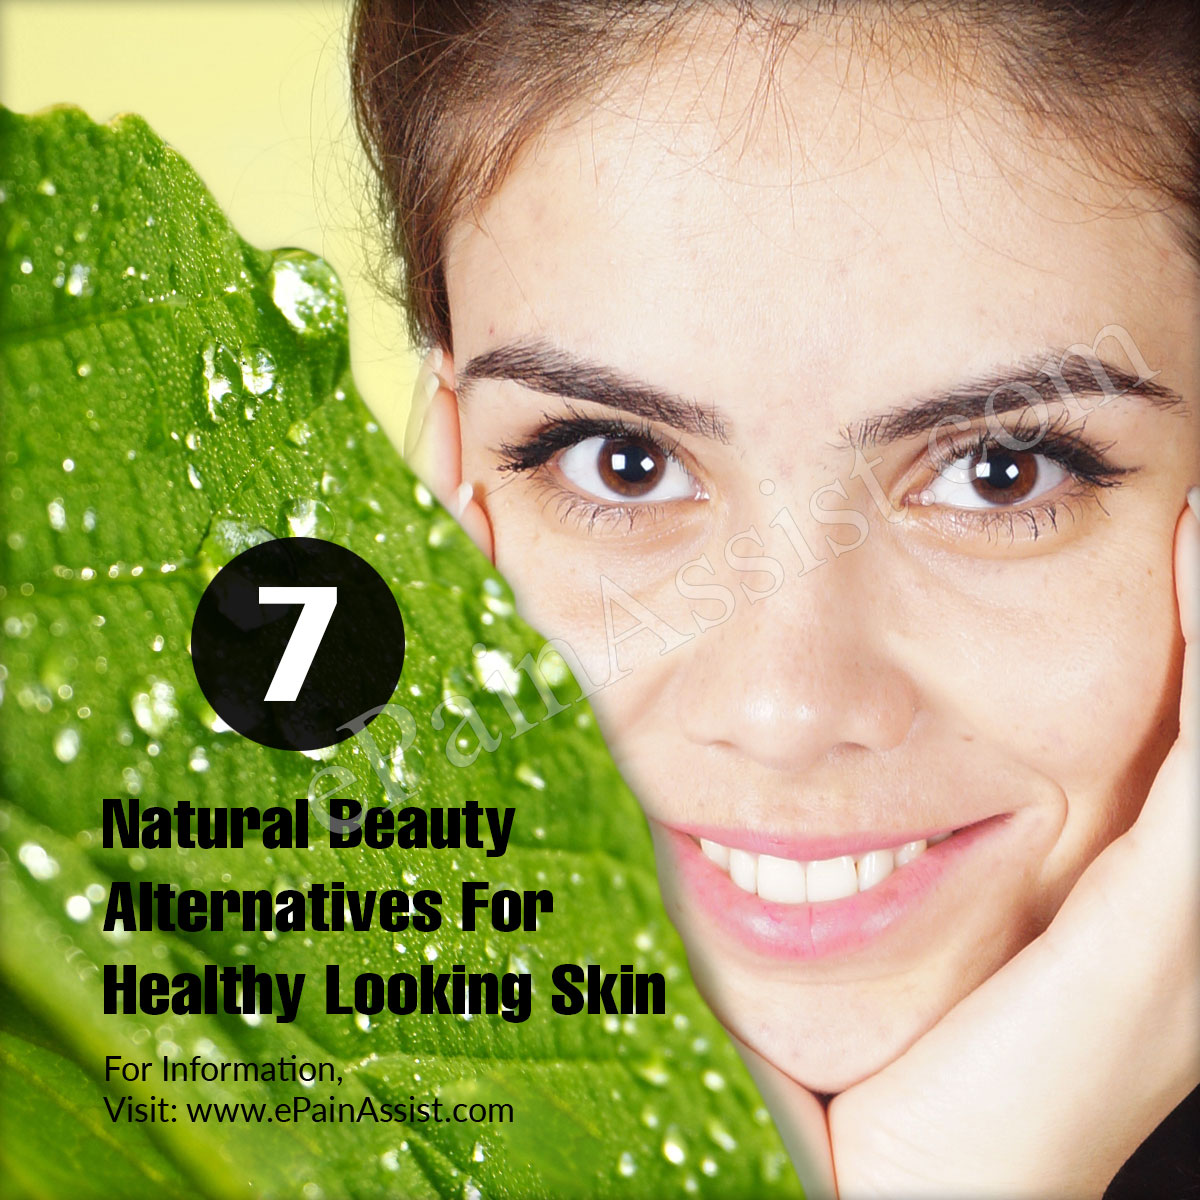 7 Natural Beauty Alternatives For Healthy Looking Skin